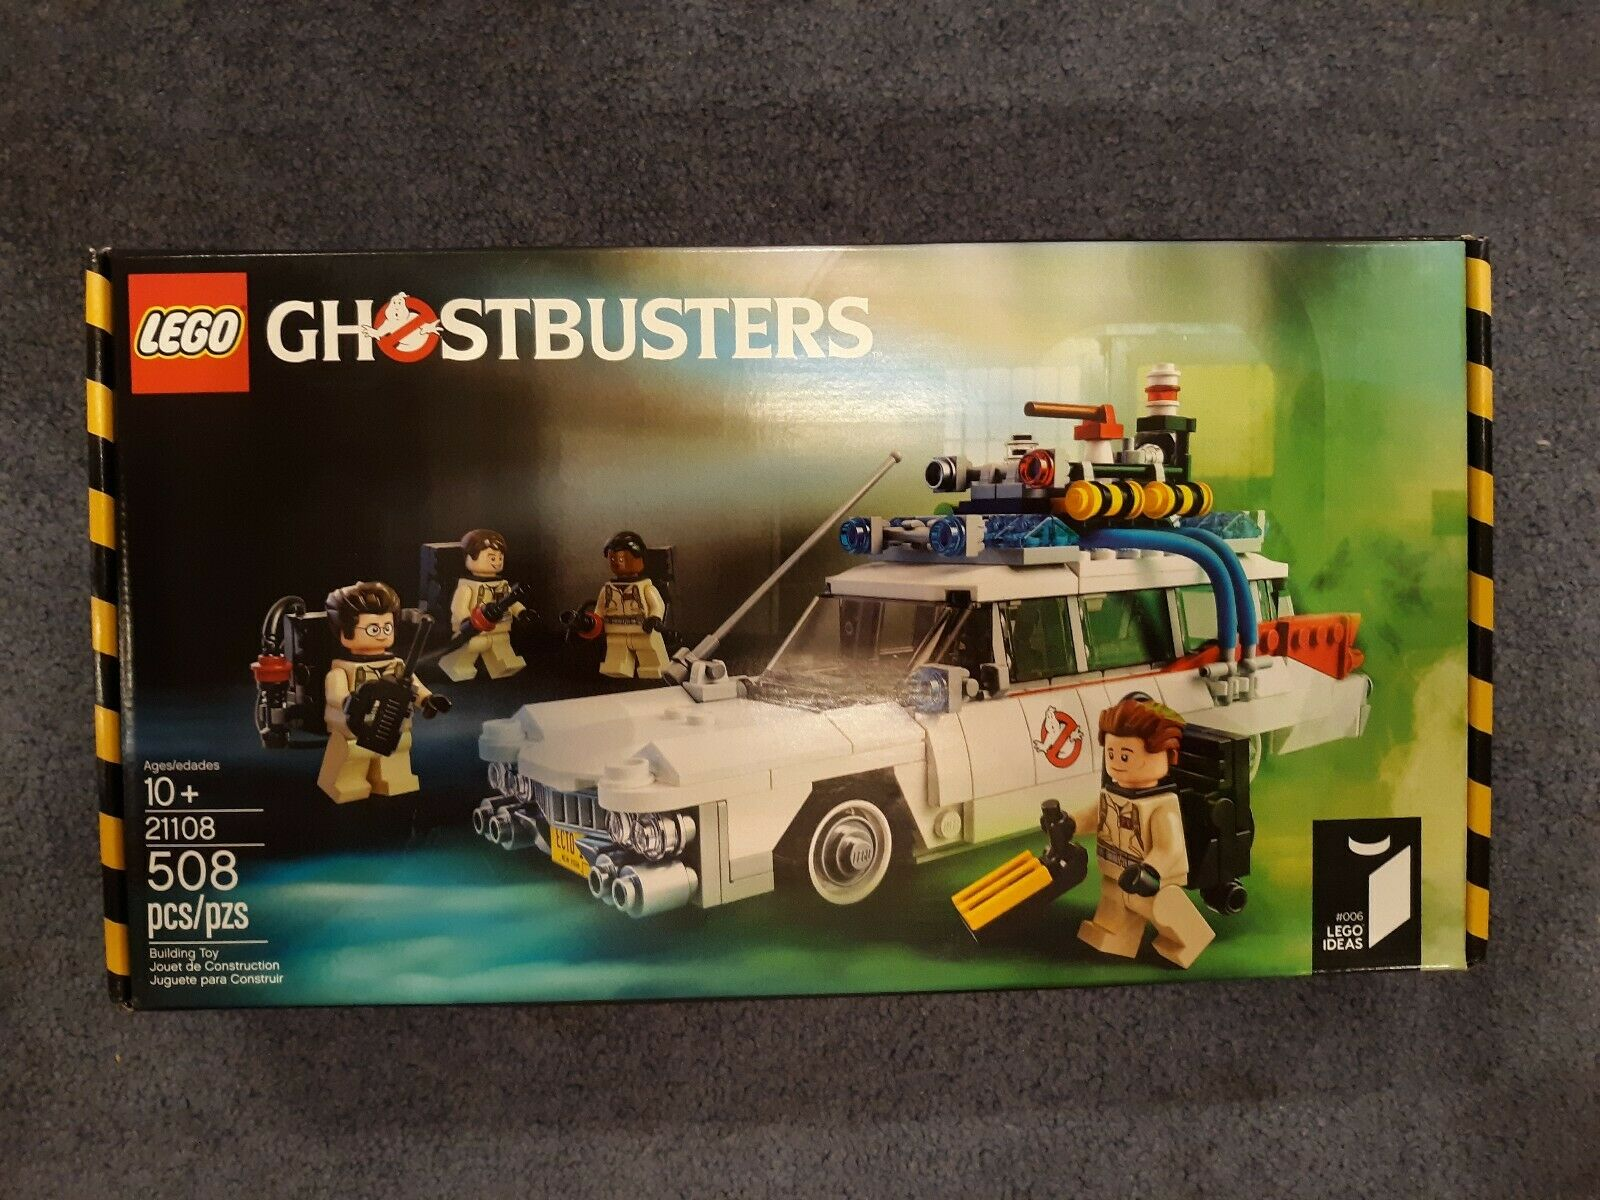 LEGO Ghostbusters Ecto-1 Car Set 21108 Sealed Brand New 508 Pieces Retired VHTF